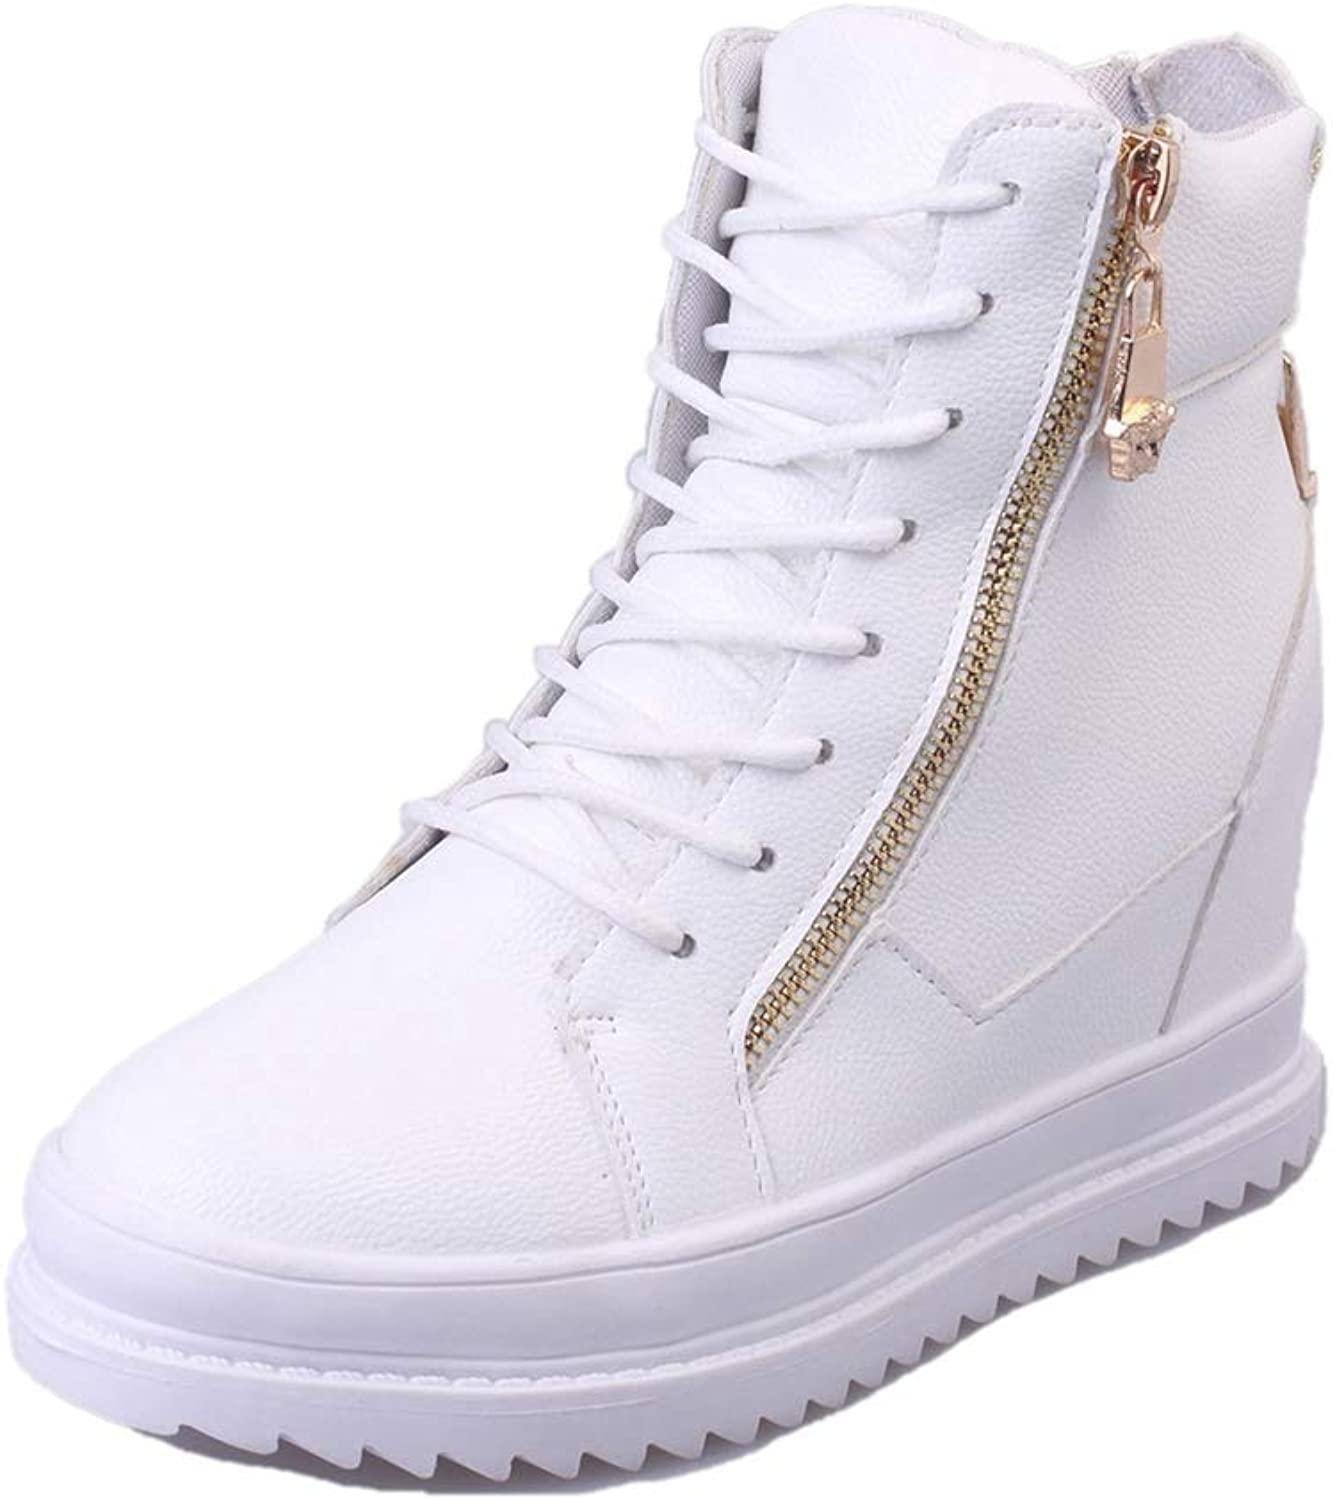 Hoxekle Women Sneaker White High Top Canvas shoes Wedge Platform Sneakers Women Casual shoes Winter Warm Cotton Padded